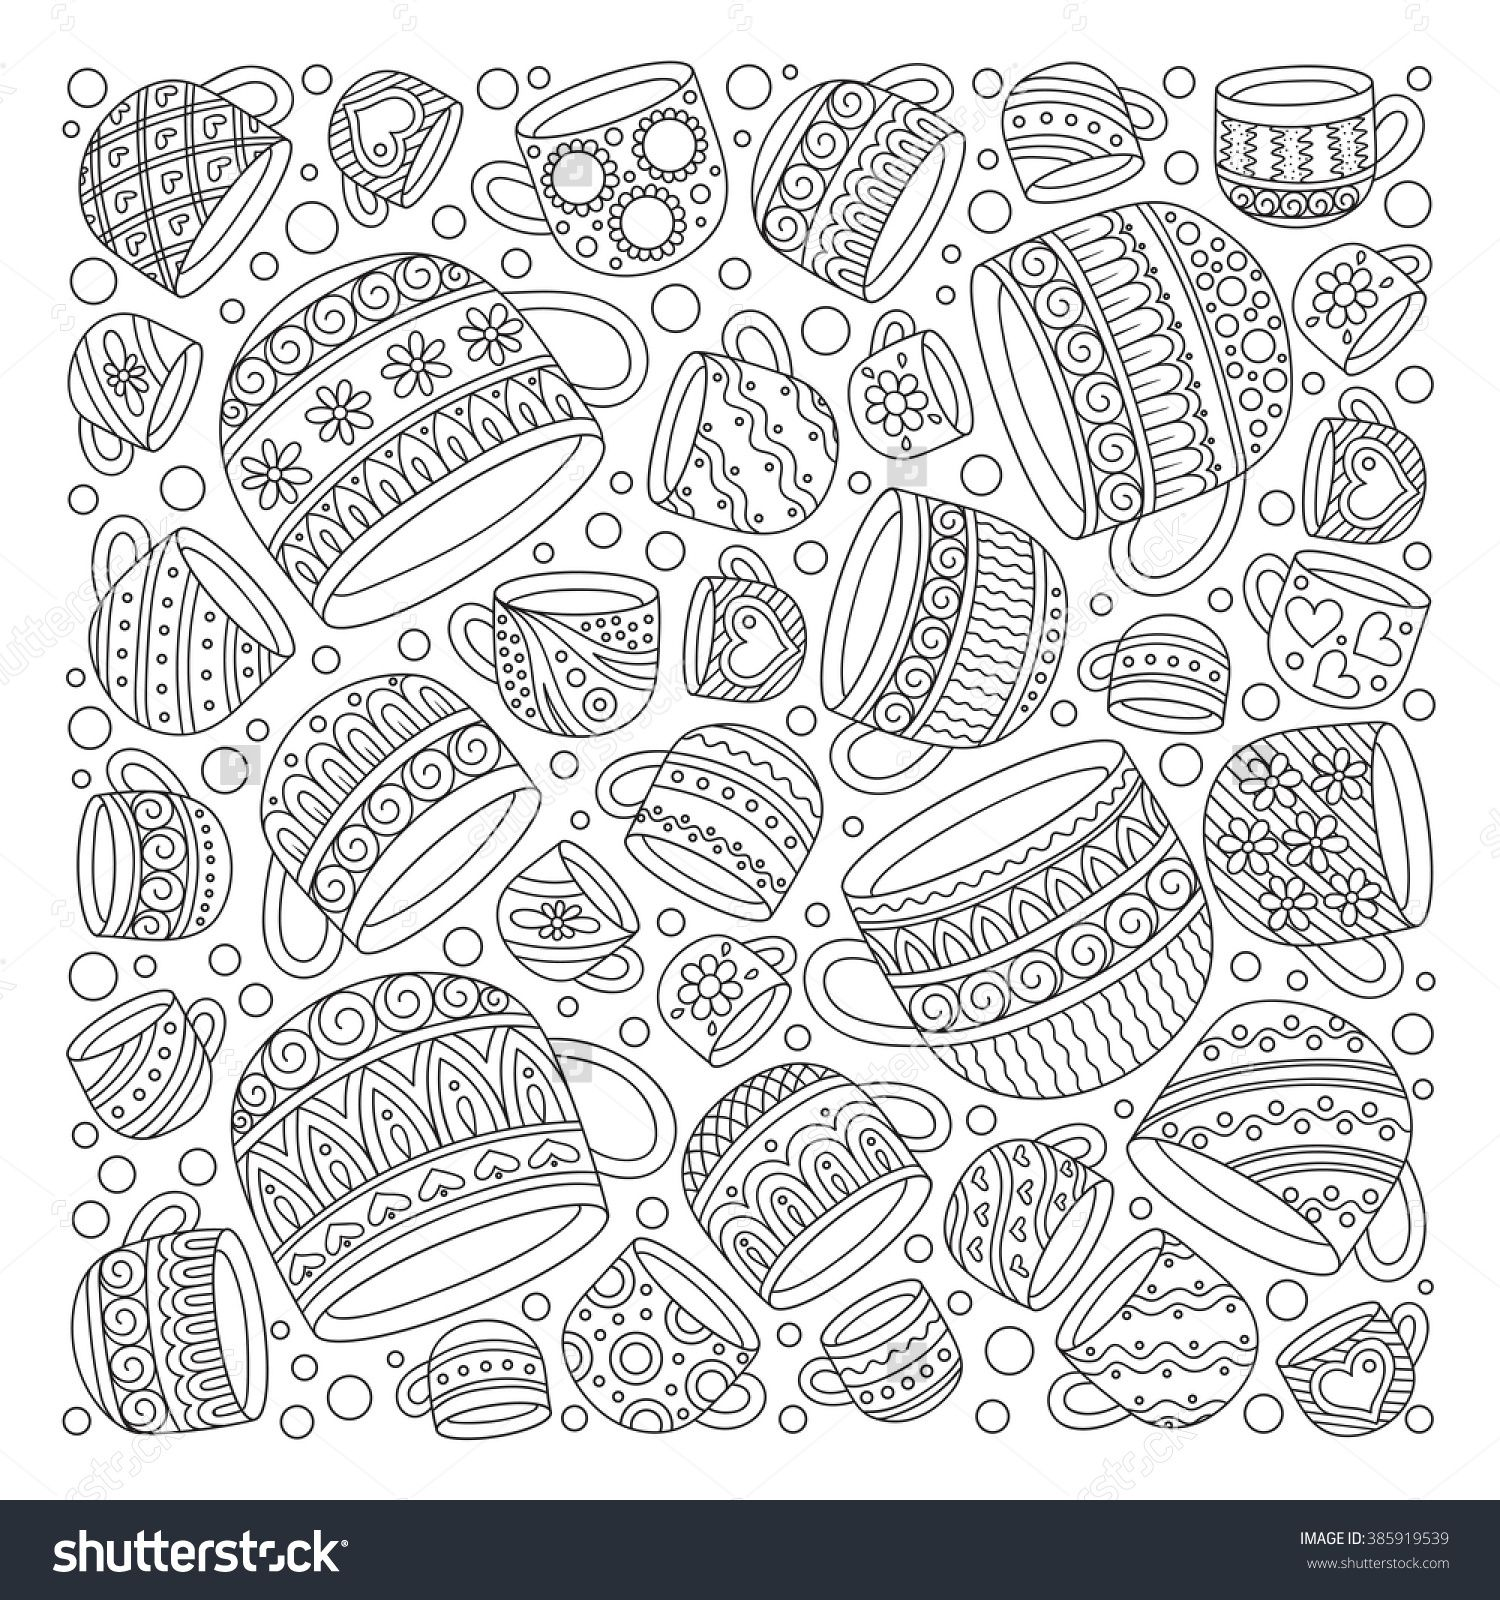 Coffee and tea cups coloring page